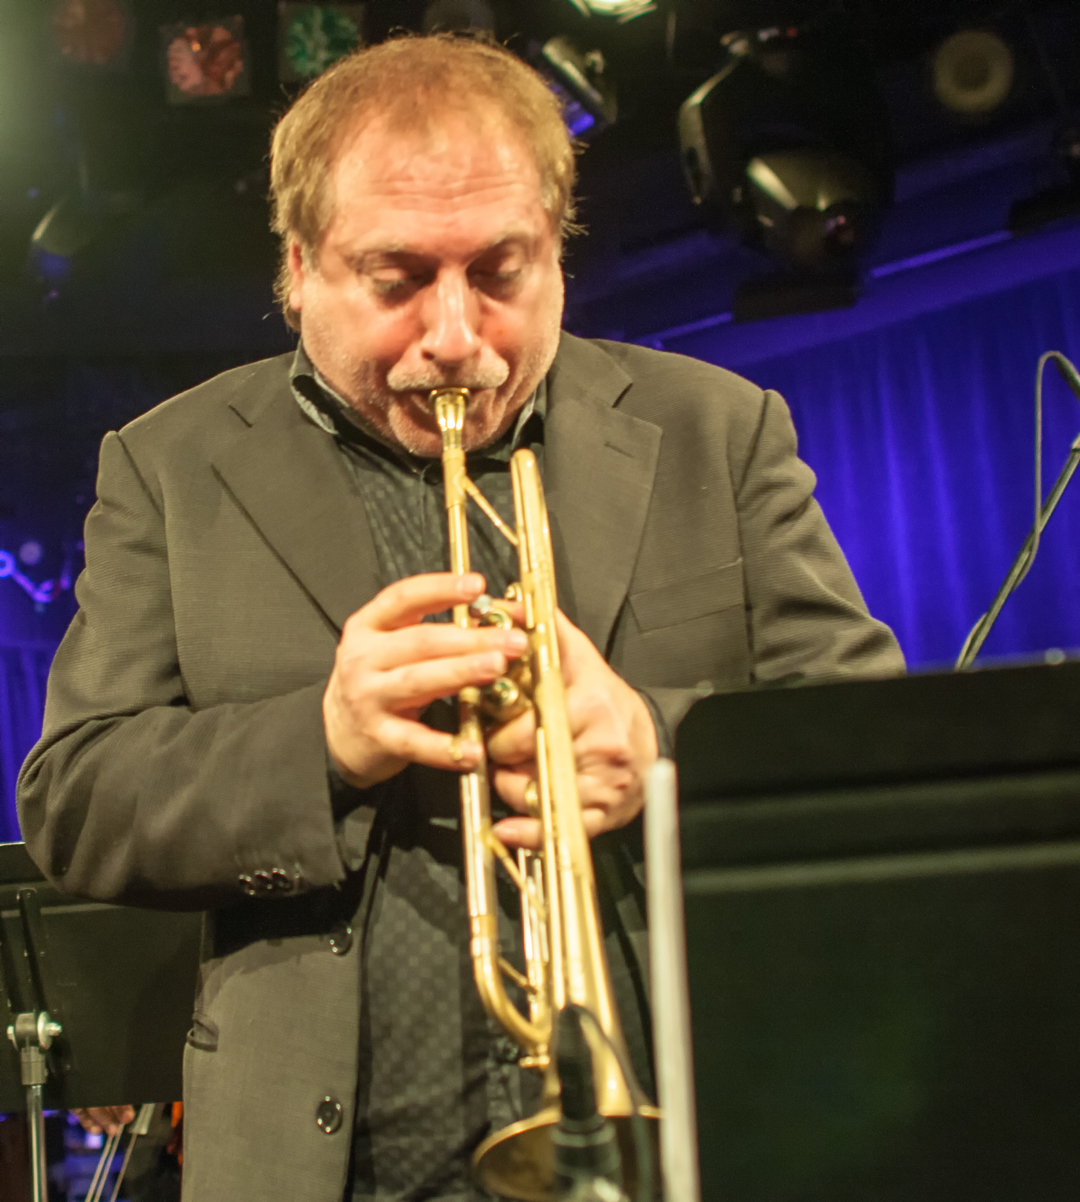 David Weiss with the Cookers at le Poisson Rouge at Winter Jazzfest 2013